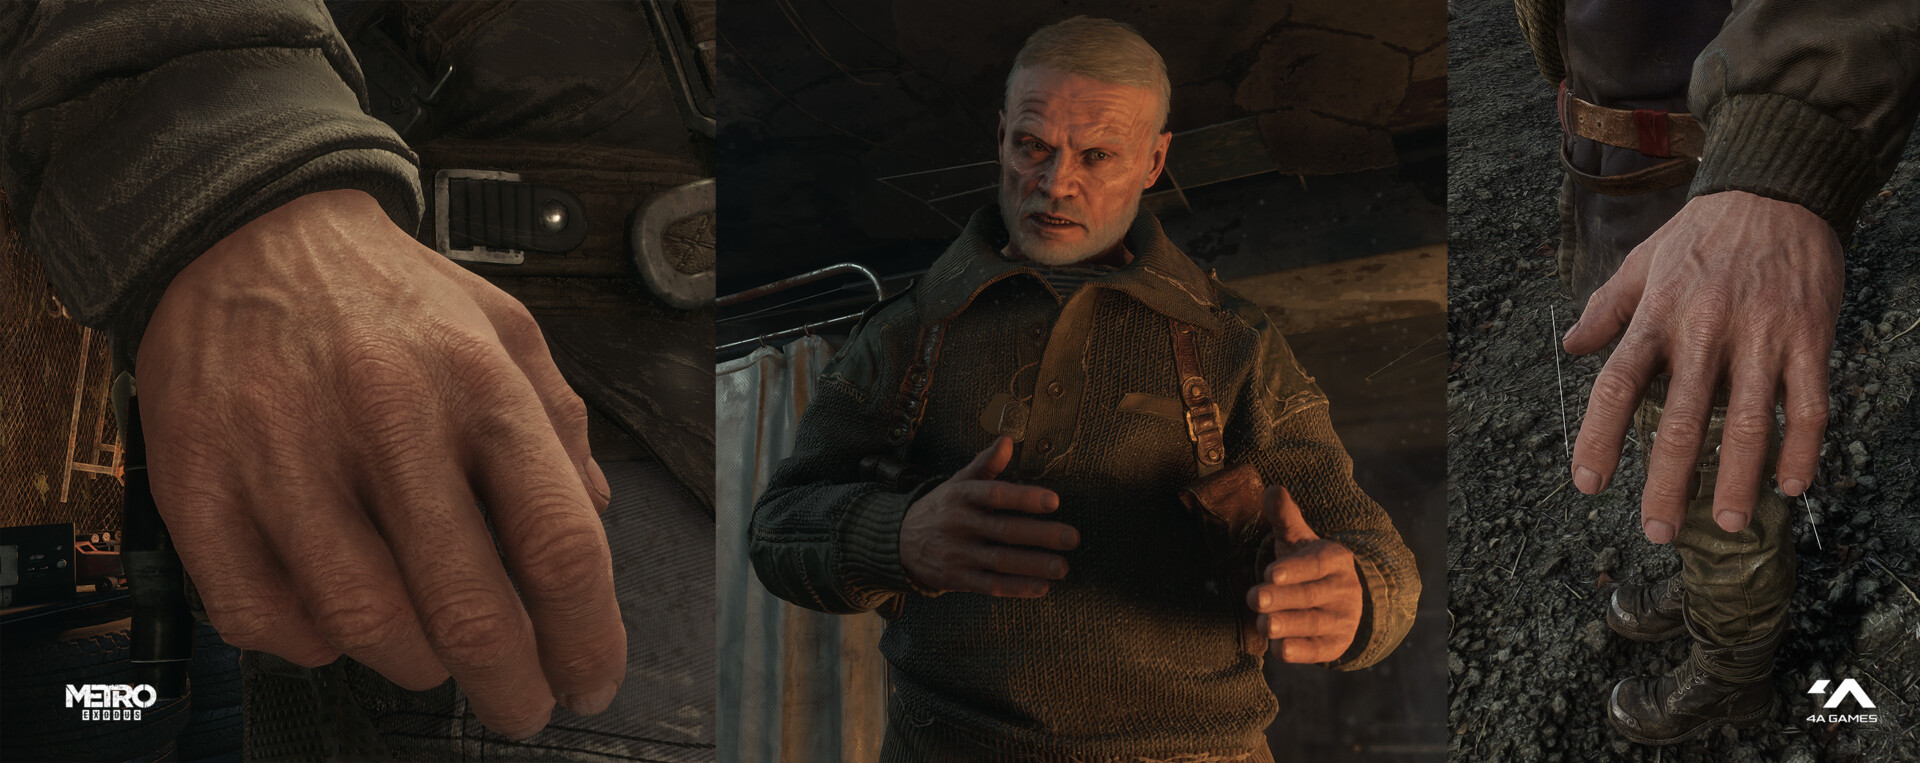 You can see these hands on most male characters in the Metro Exodus game